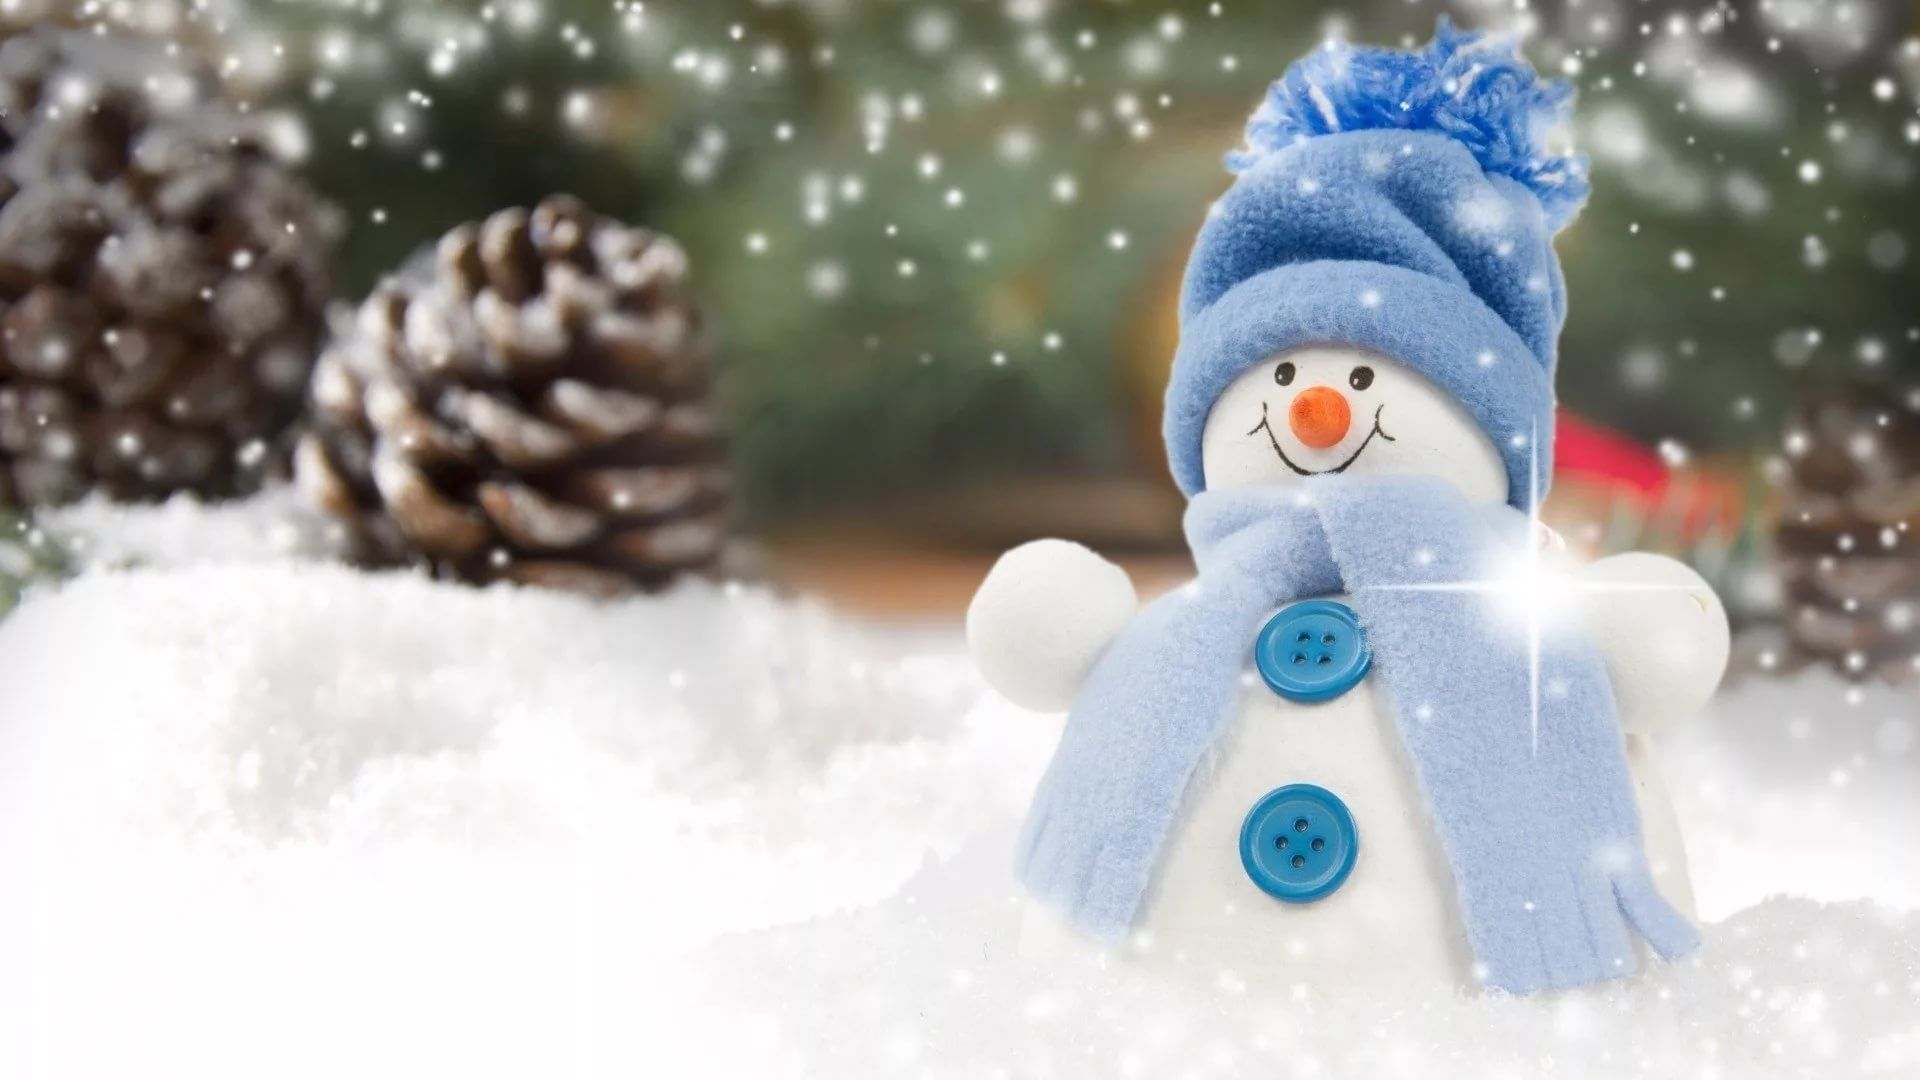 Cute Winter Wallpapers 36 Images Wallpaperboat